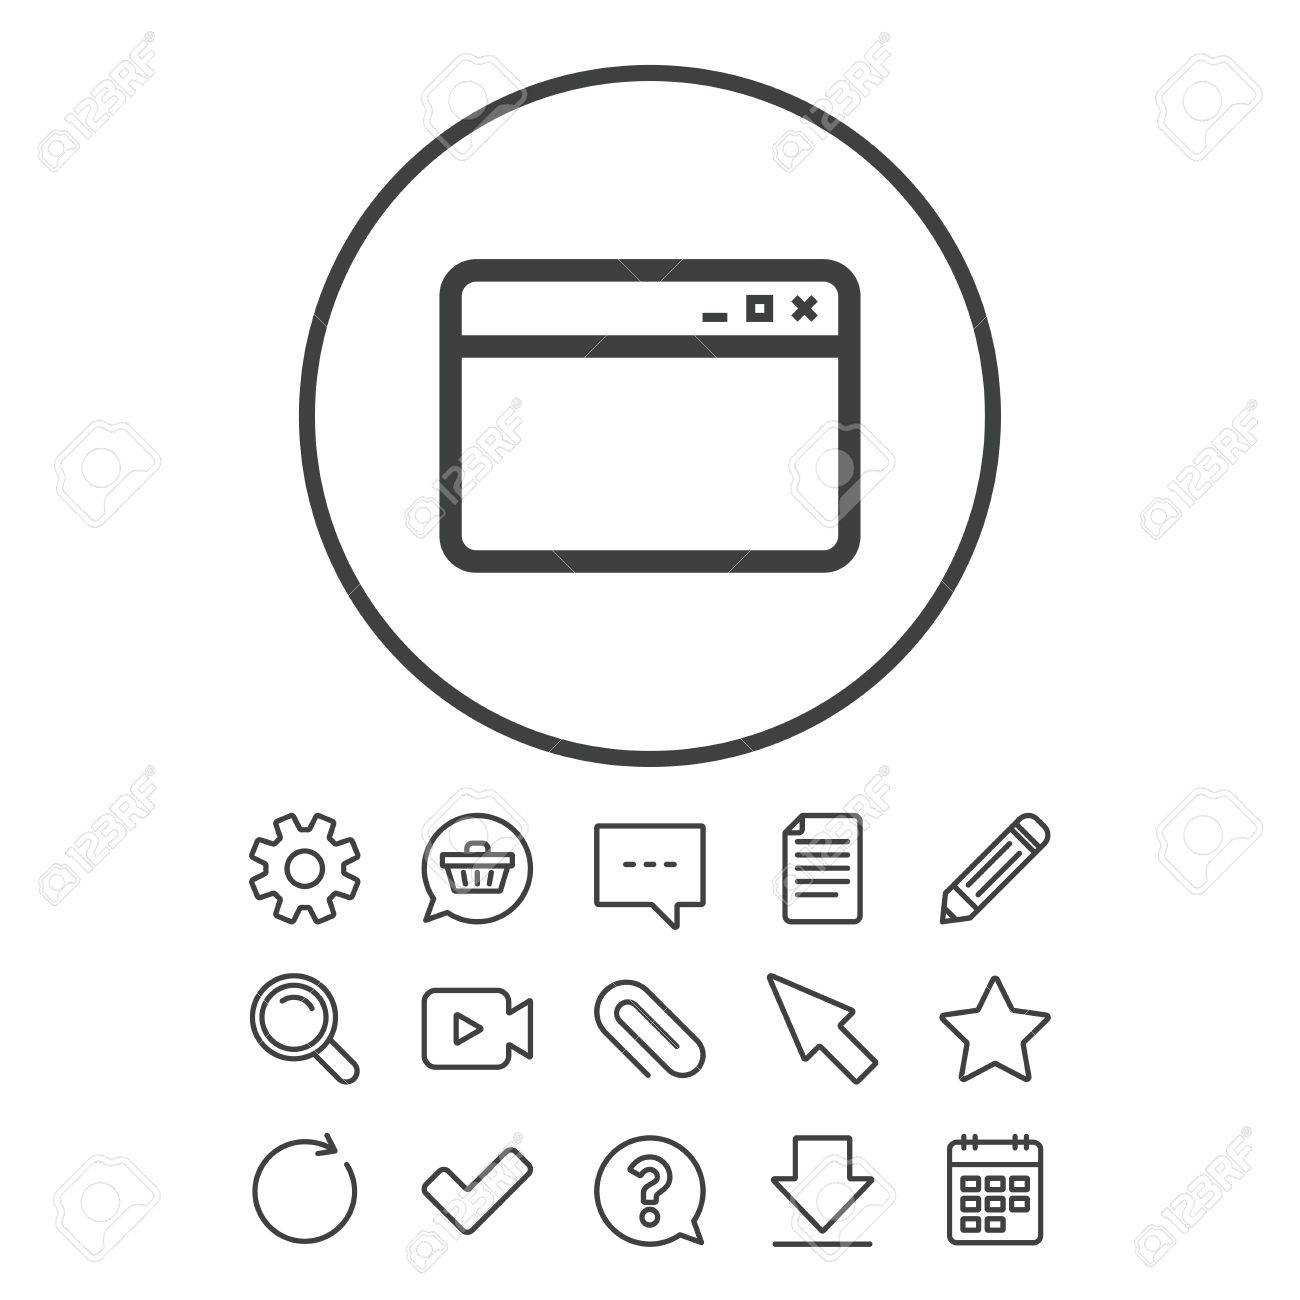 Browser window icon internet page symbol website empty template internet page symbol website empty template sign document chat buycottarizona Gallery